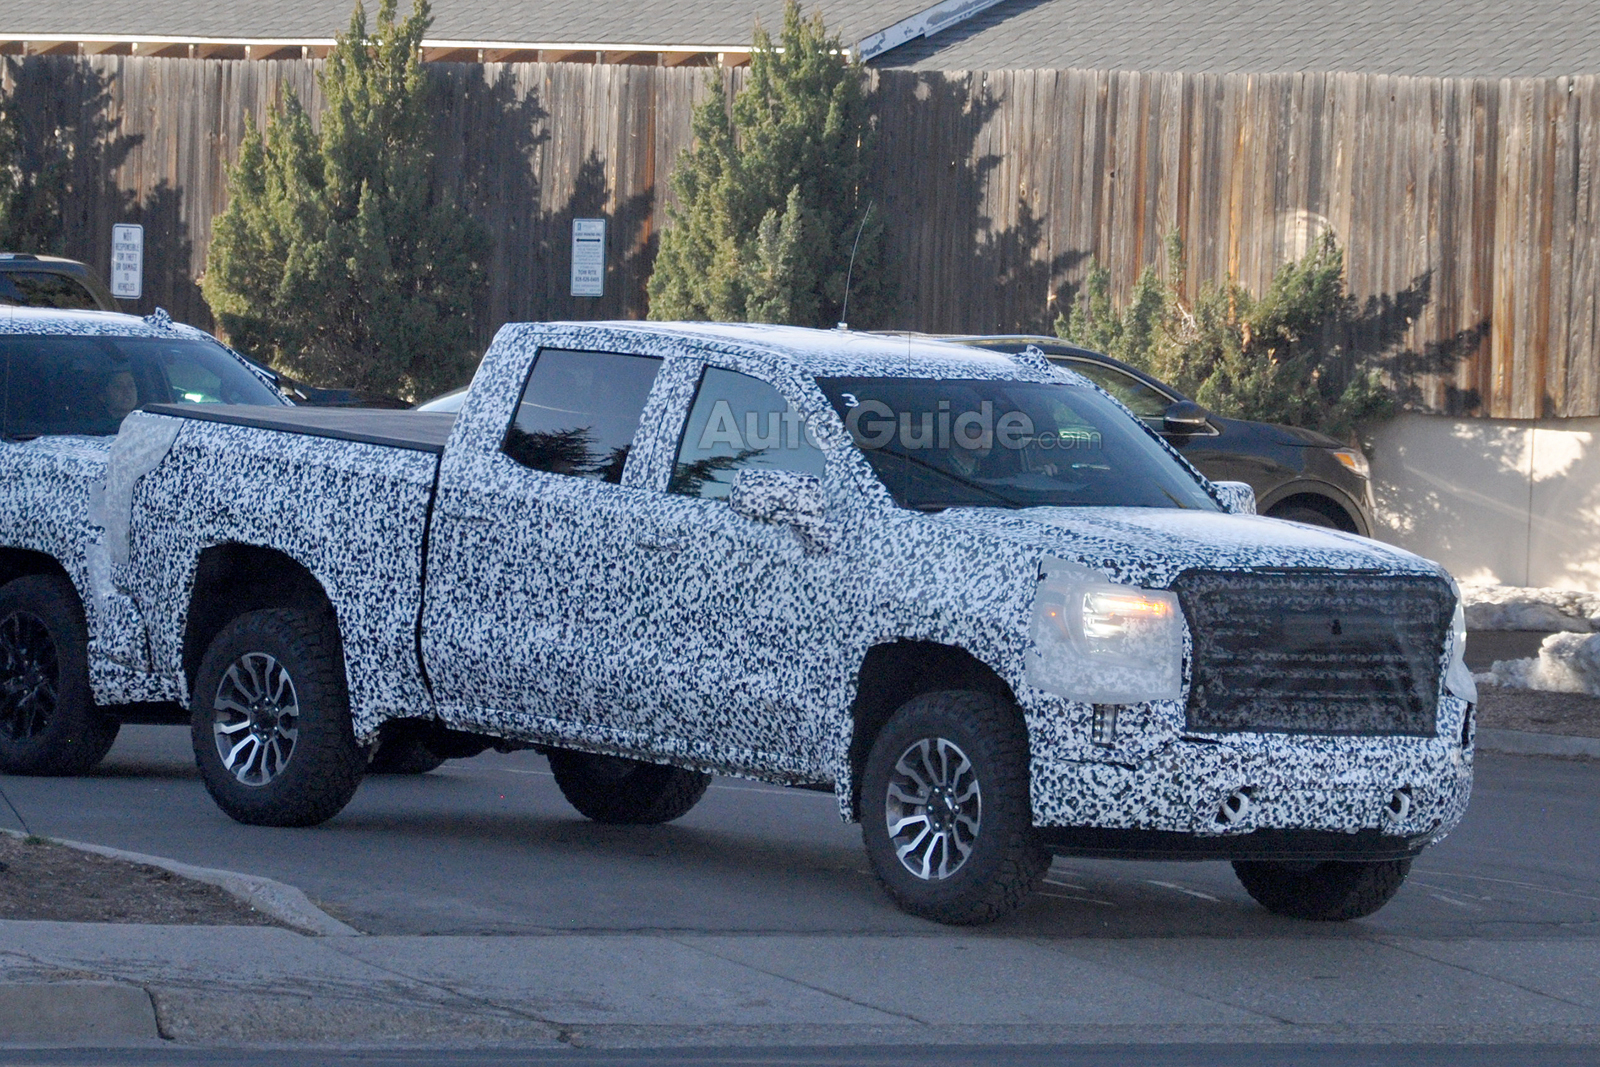 2019 Gmc Sierra All Terrain Spied With Trail Boss